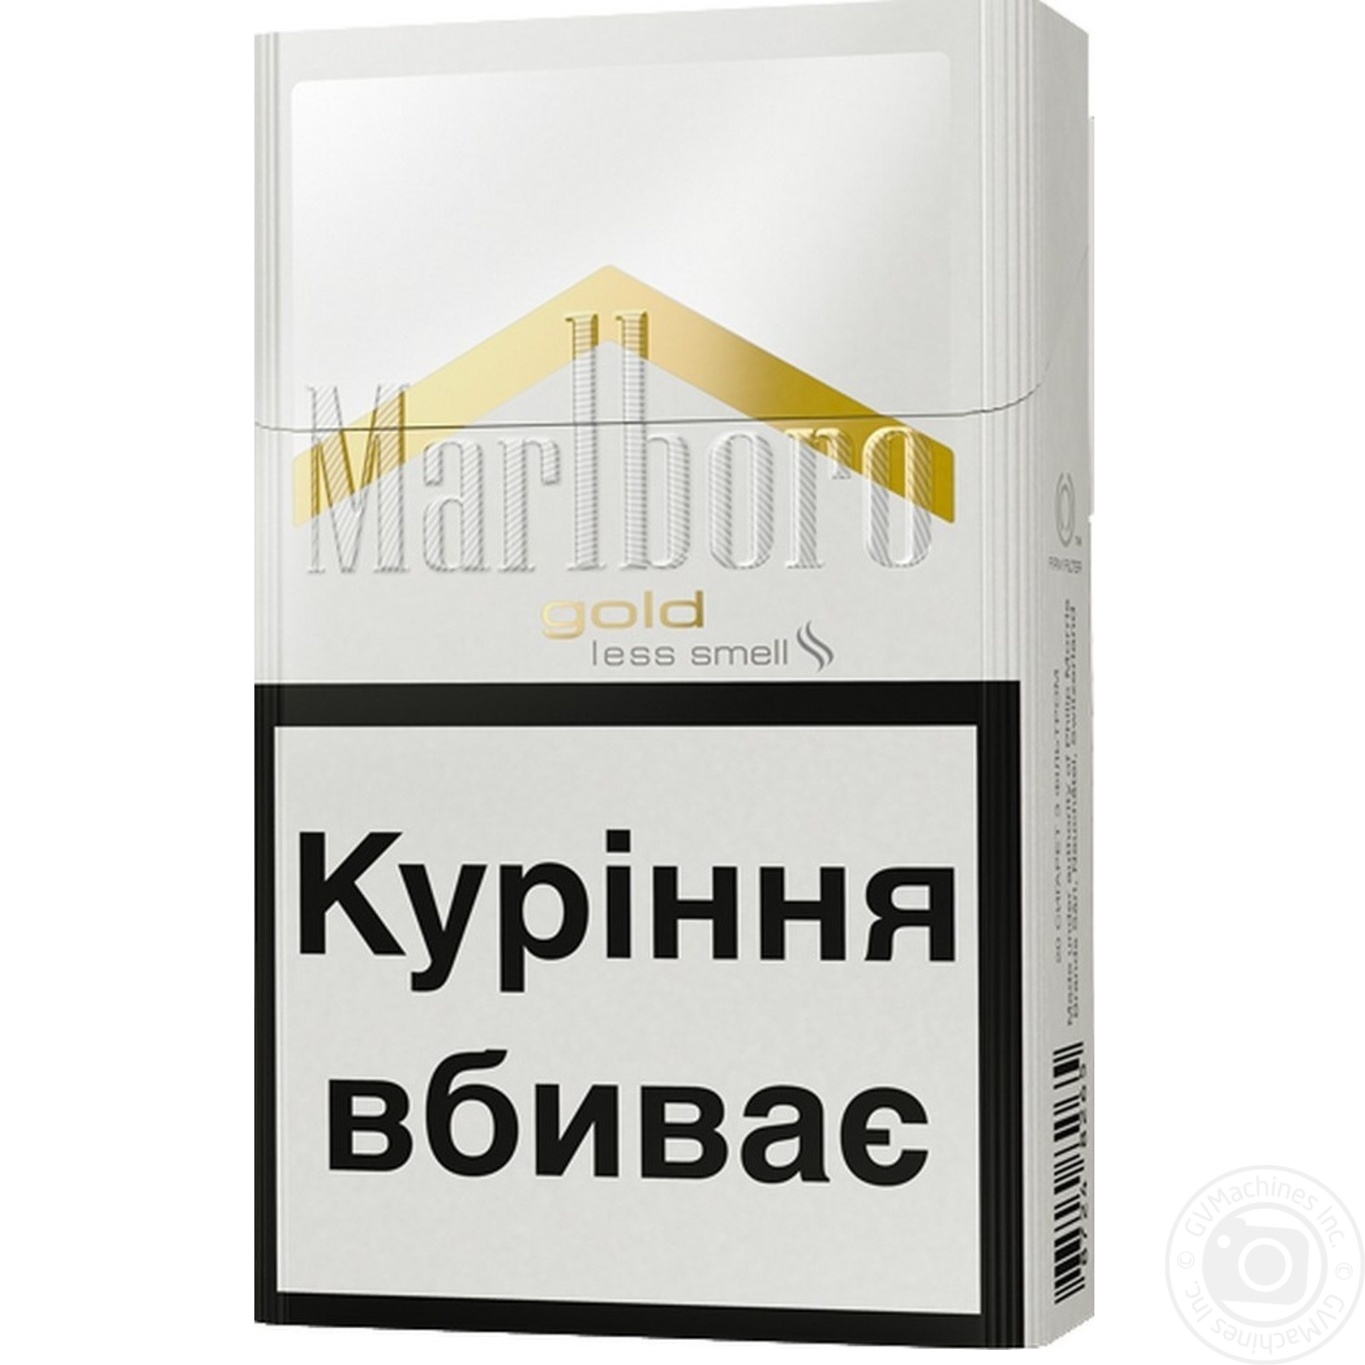 Best buy on Bond cigarettes